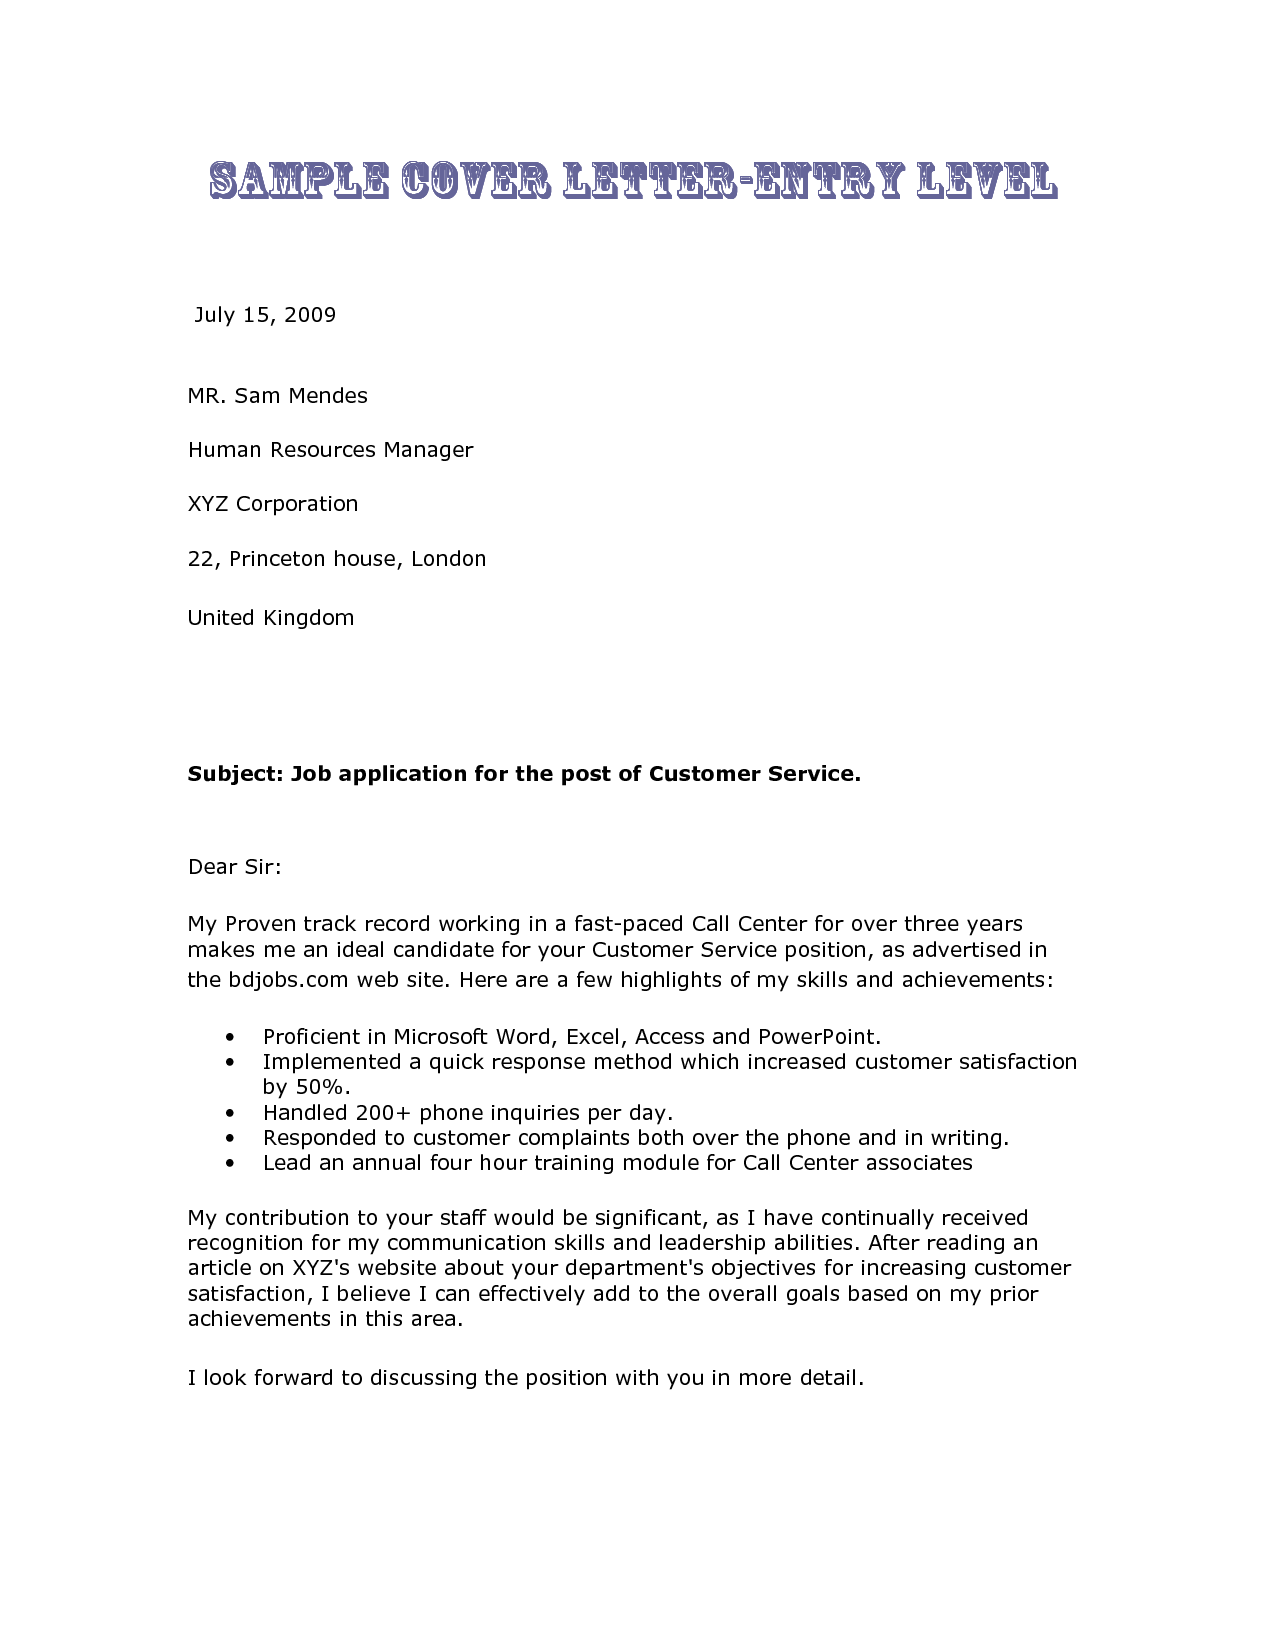 Entry Level Cover Letter Examples -  Http://www.resumecareer.info/entry-Level-Cover-Letter-Examples/